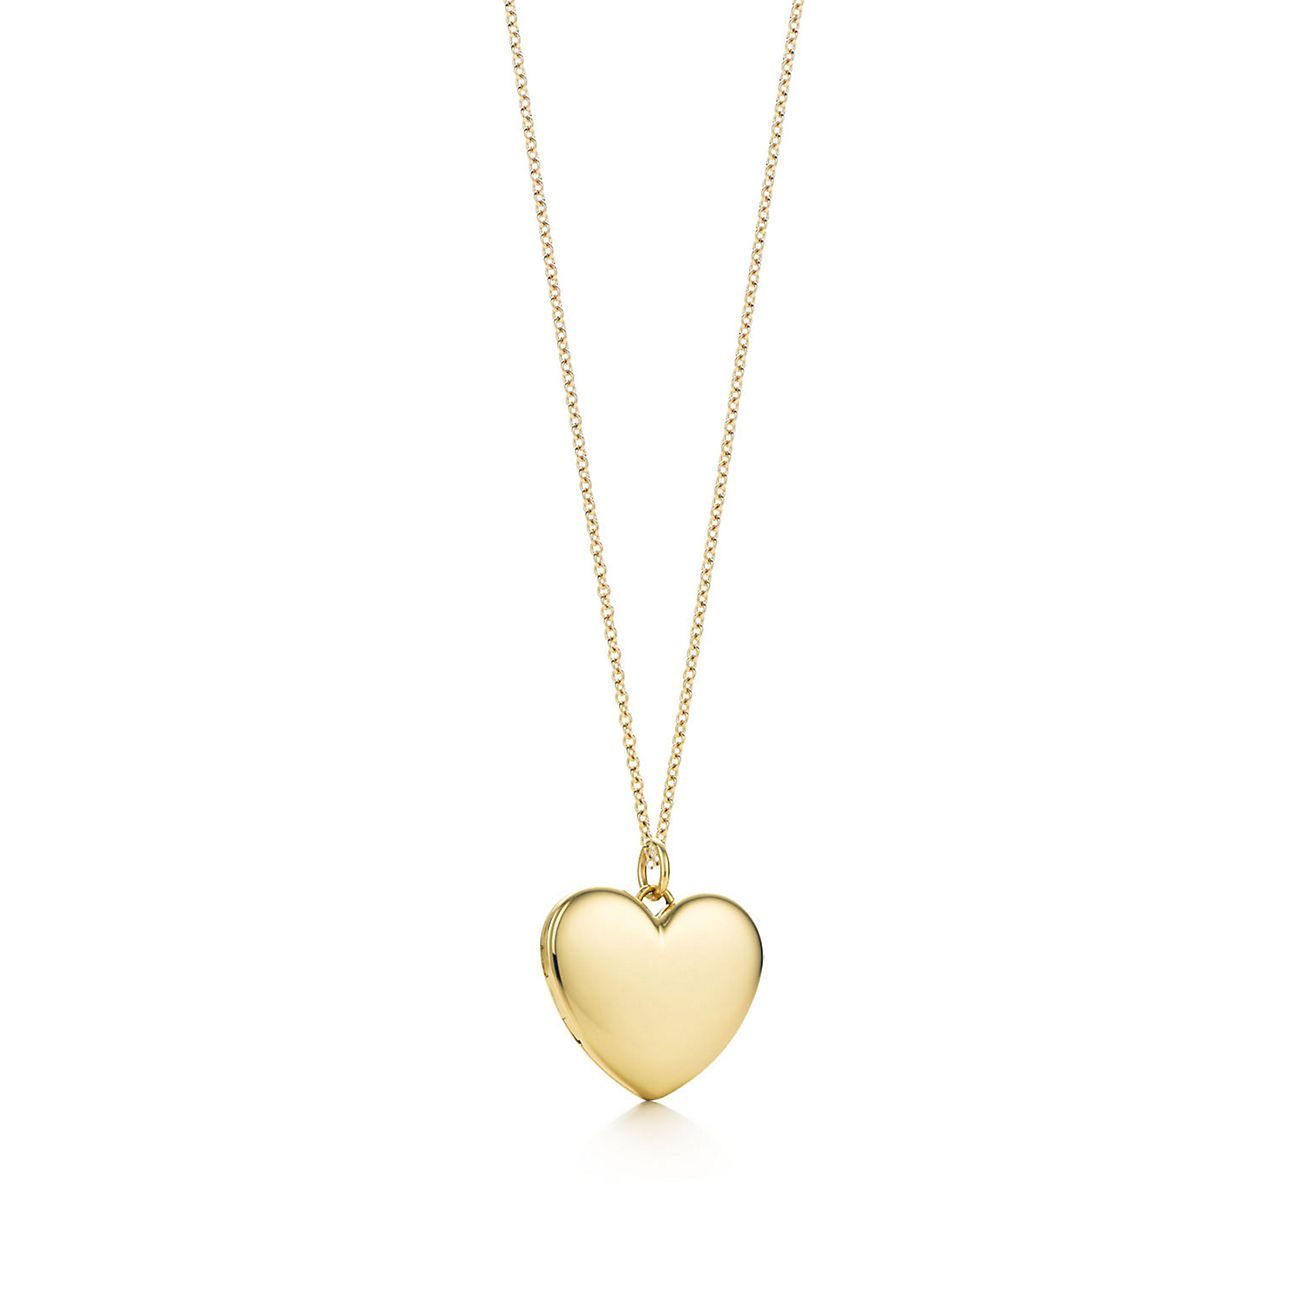 necklace chains pandora en cz clear hearts us of gold loving jewelry heart